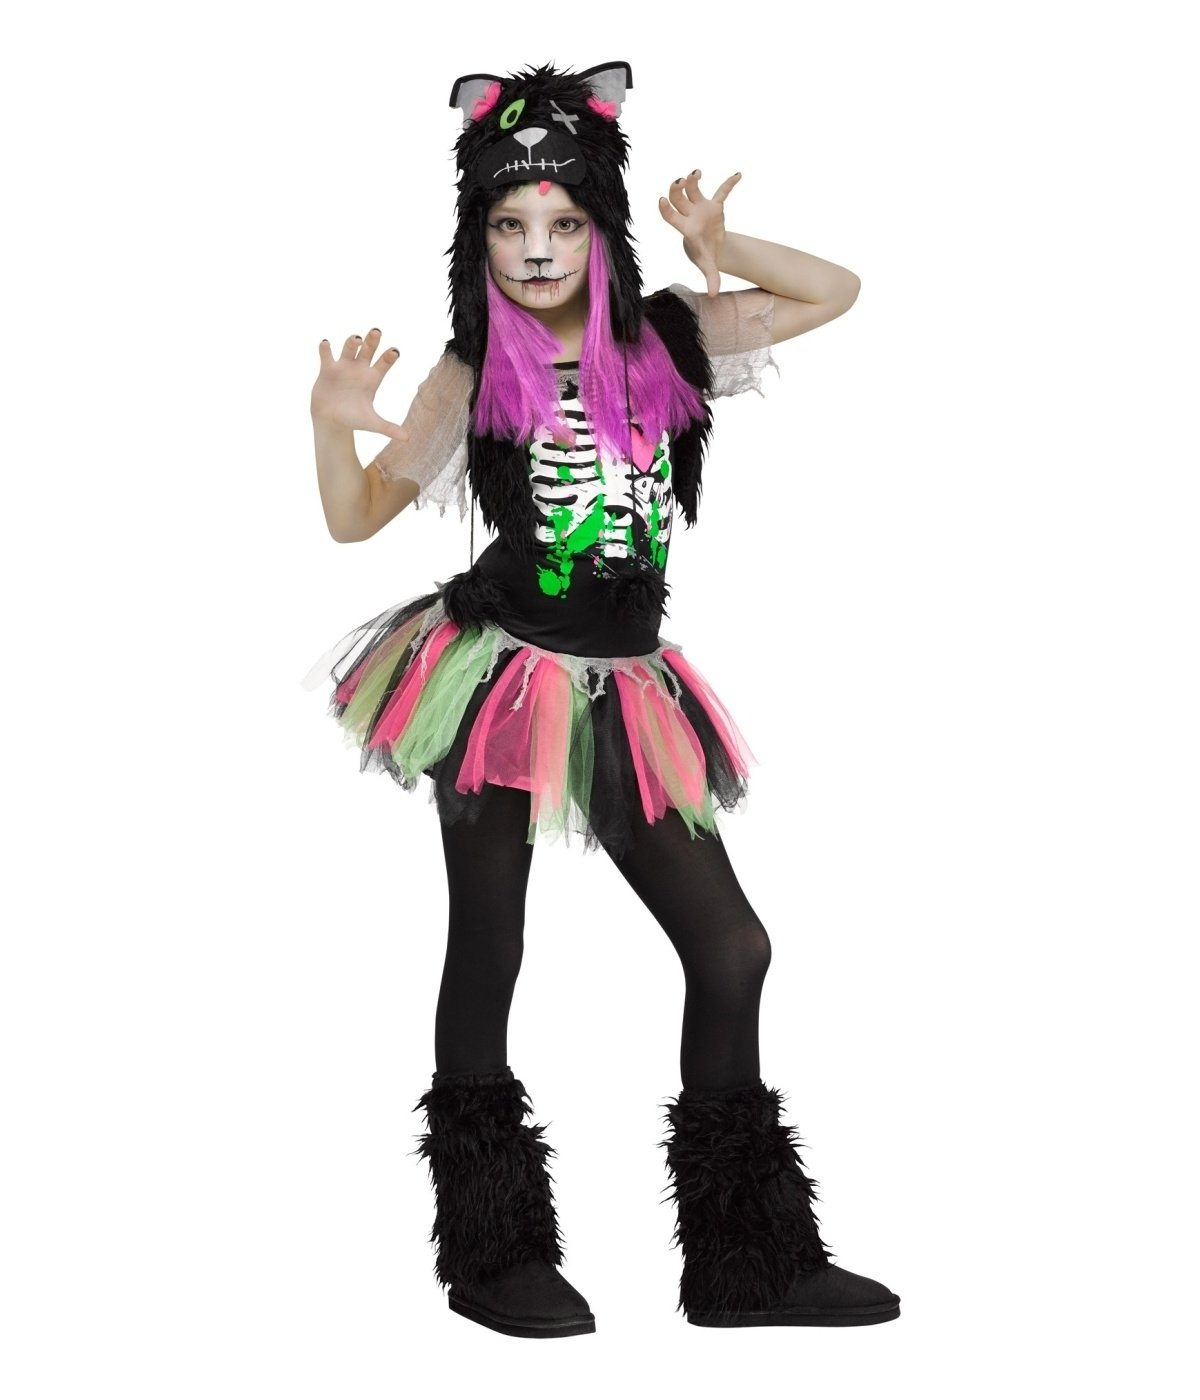 10 Attractive Zombie Costume Ideas For Kids zombie kitty cat girls costume cat girl costume and costumes 2021